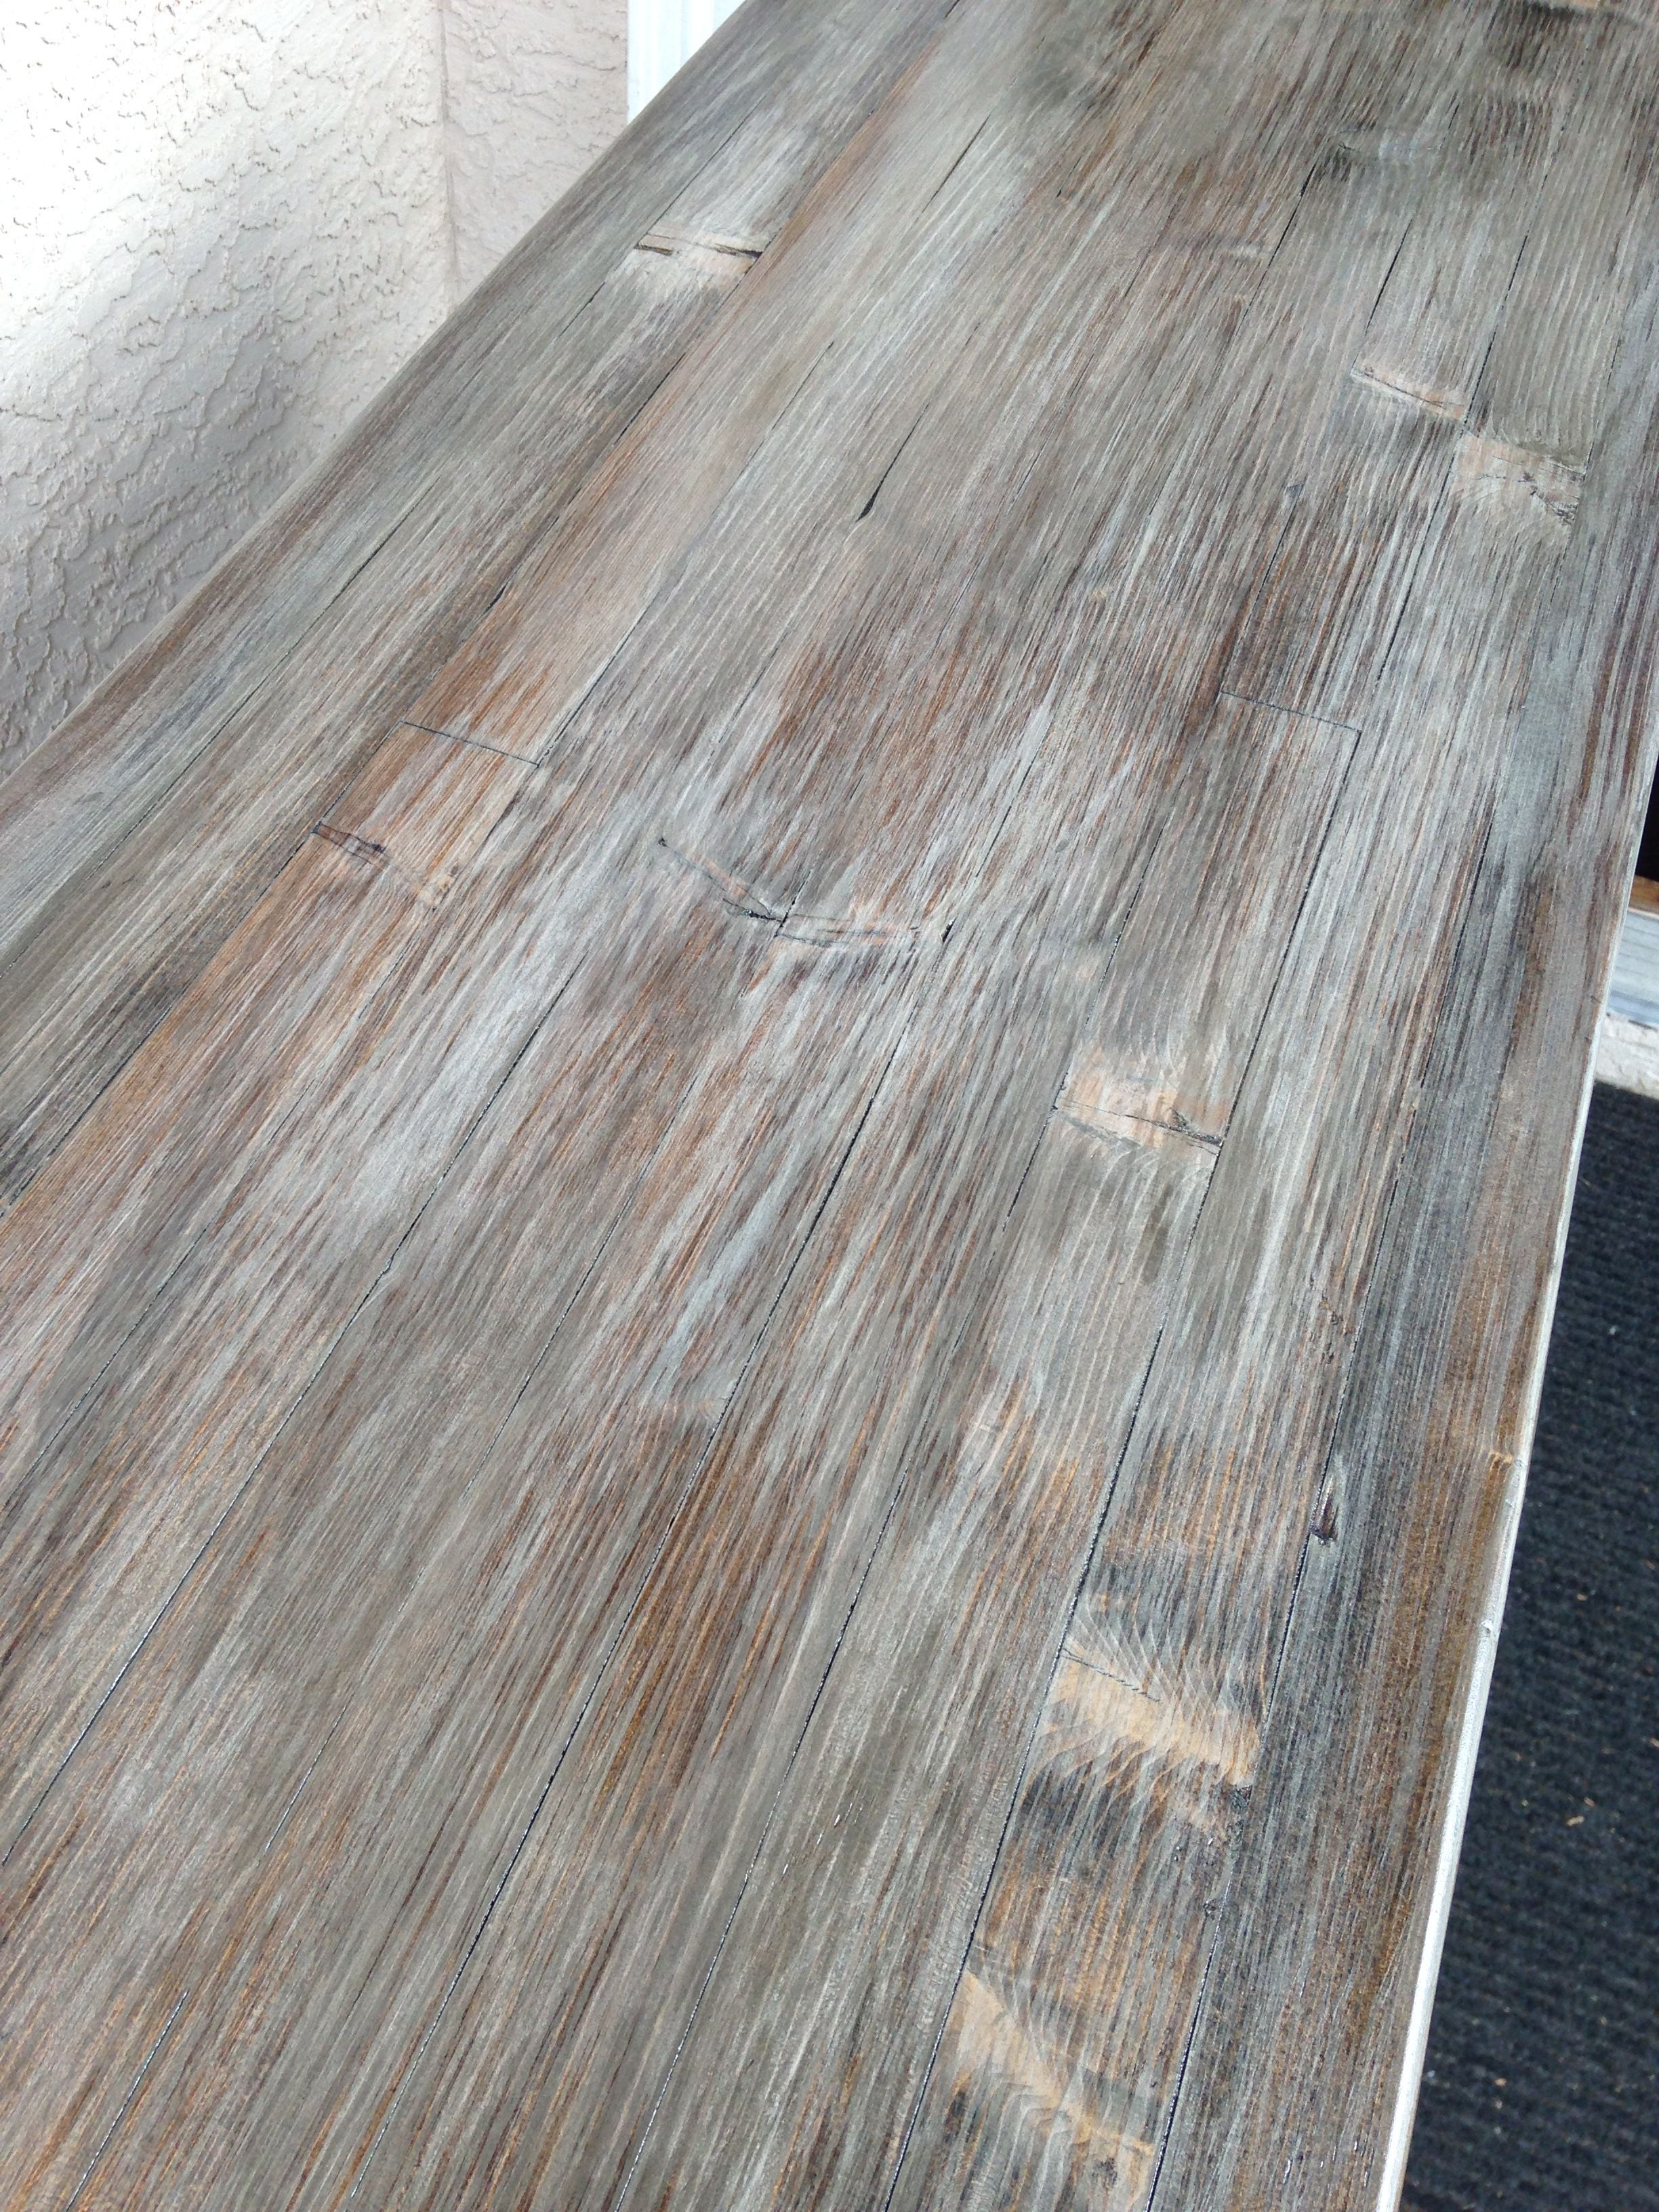 Weathered oak   driftwood finish achieved by layering dark walnut stain  with a grey latex wash. How to Create a Weathered Wood Gray Finish   Grey wash  Desks and